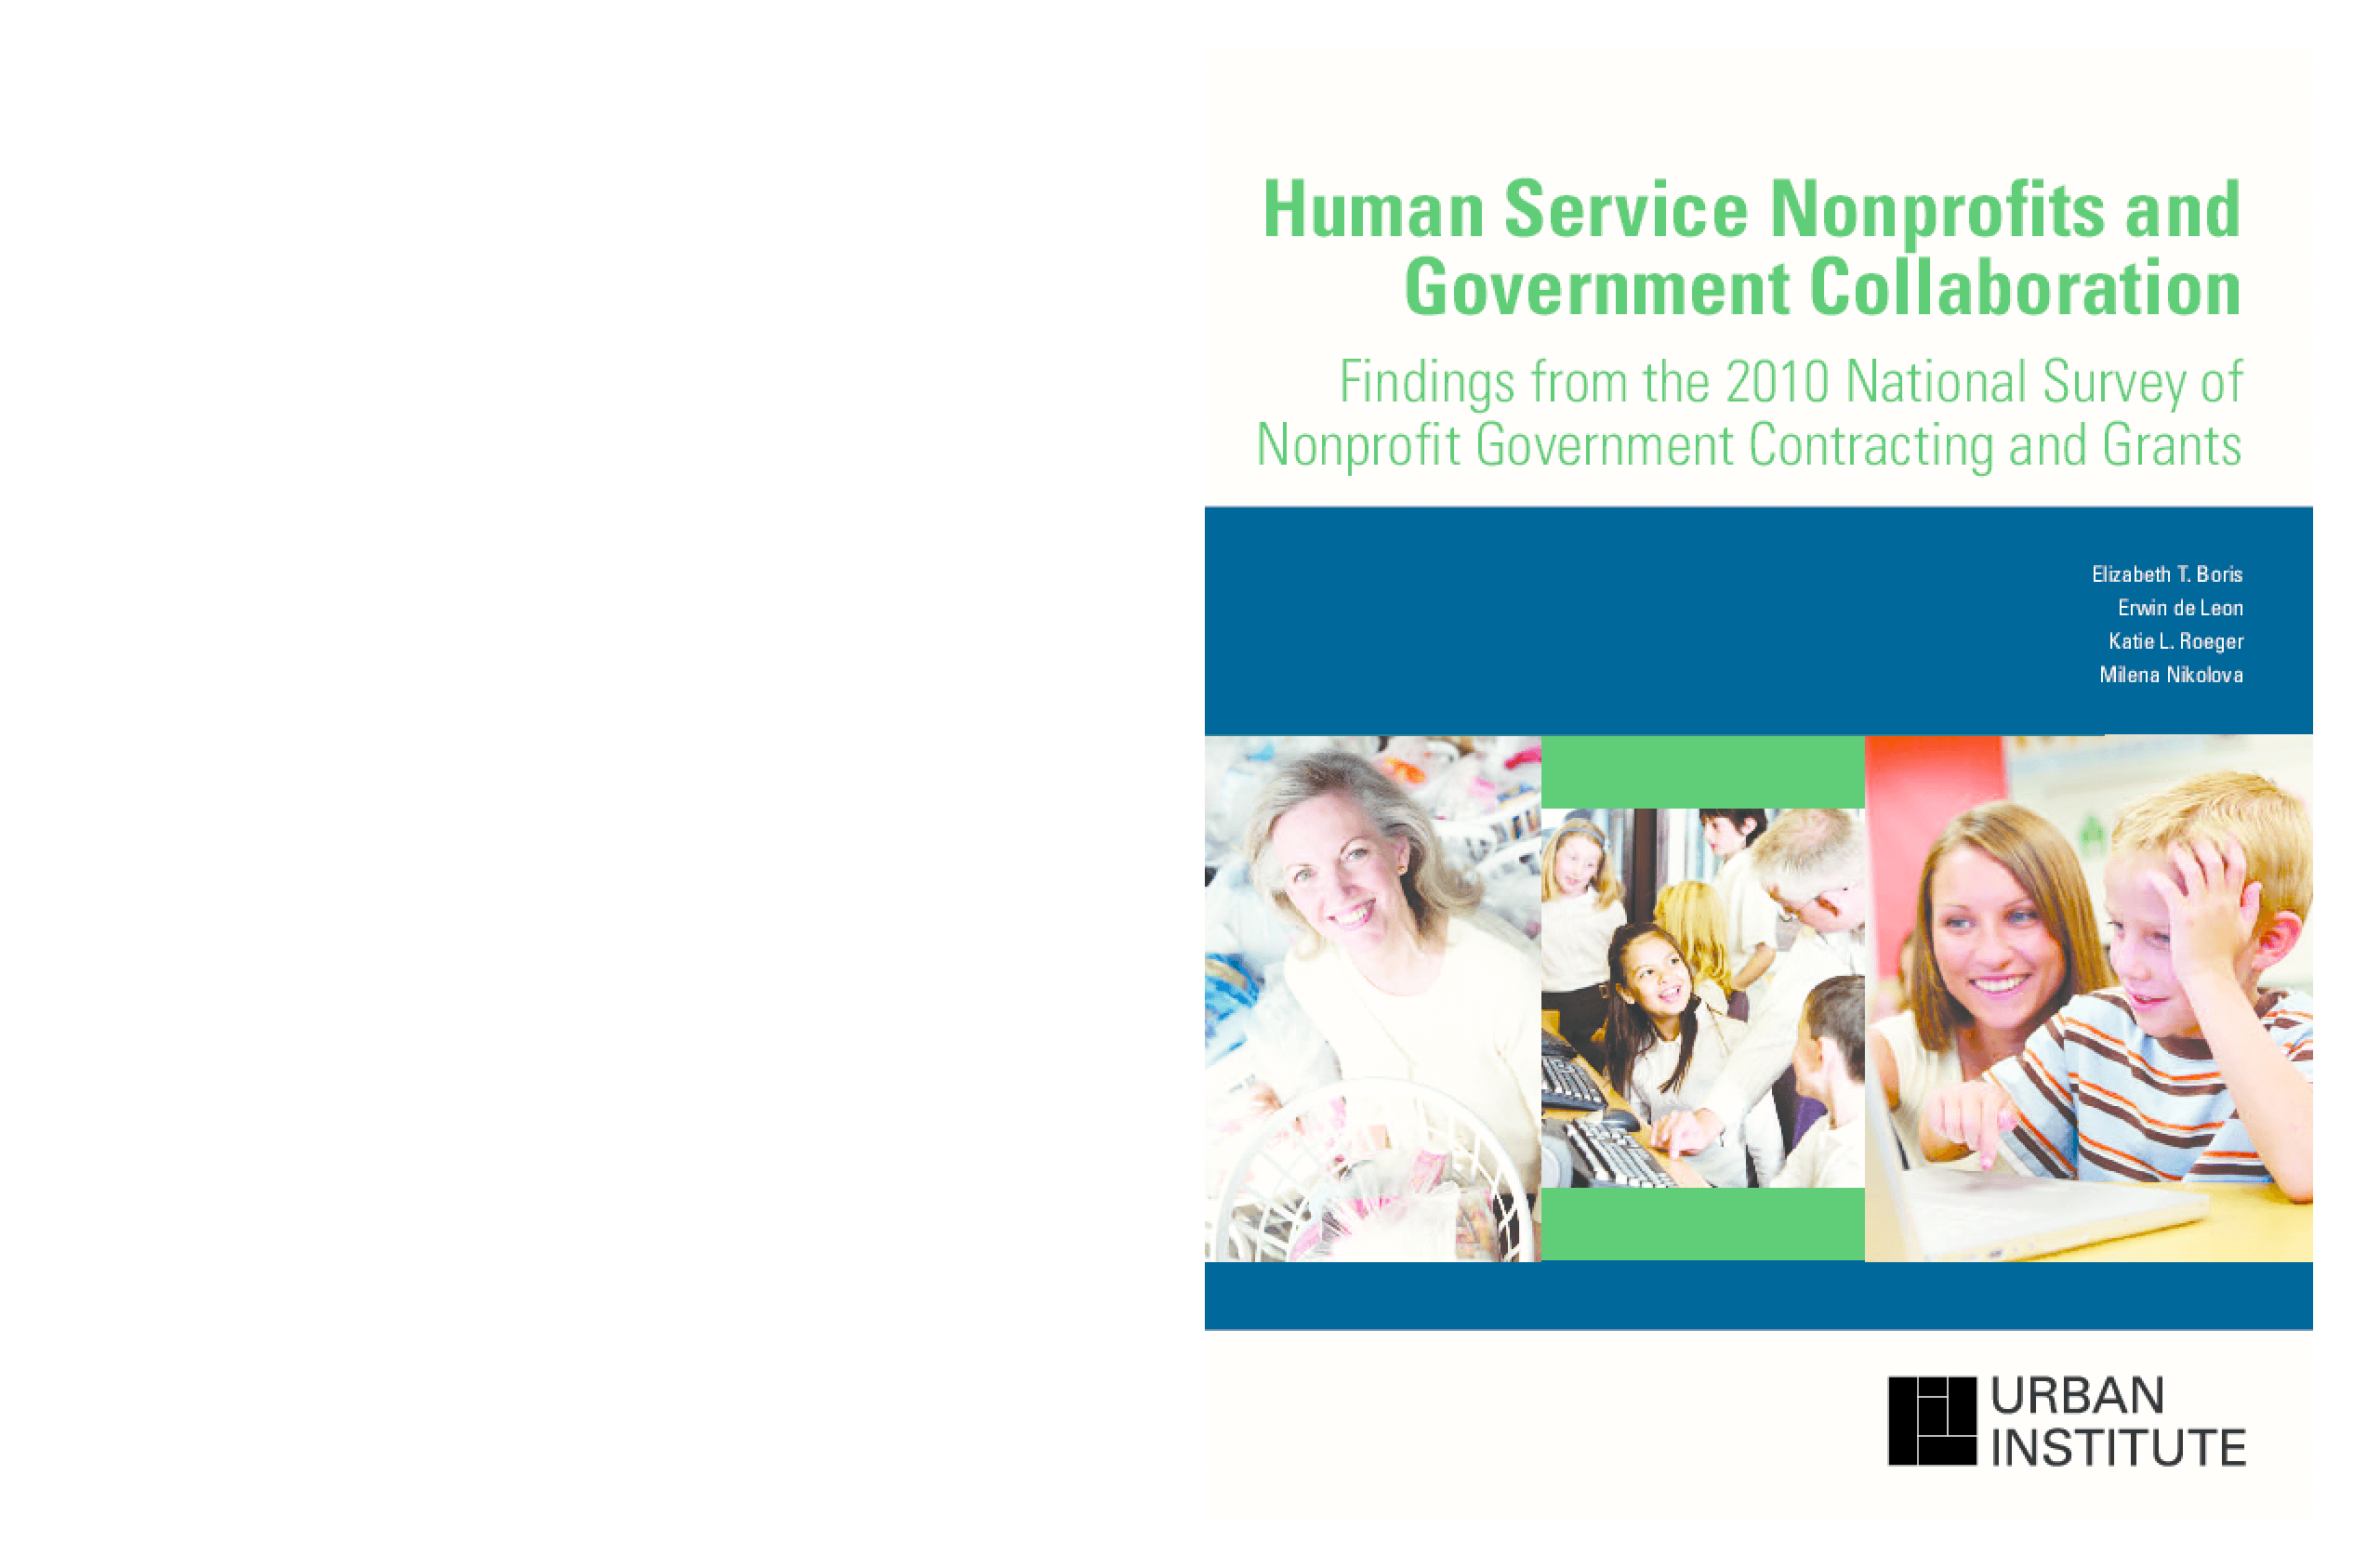 Human Service Nonprofits and Government Collaboration: Findings from the 2010 National Survey of Nonprofit Government Contracting and Grants